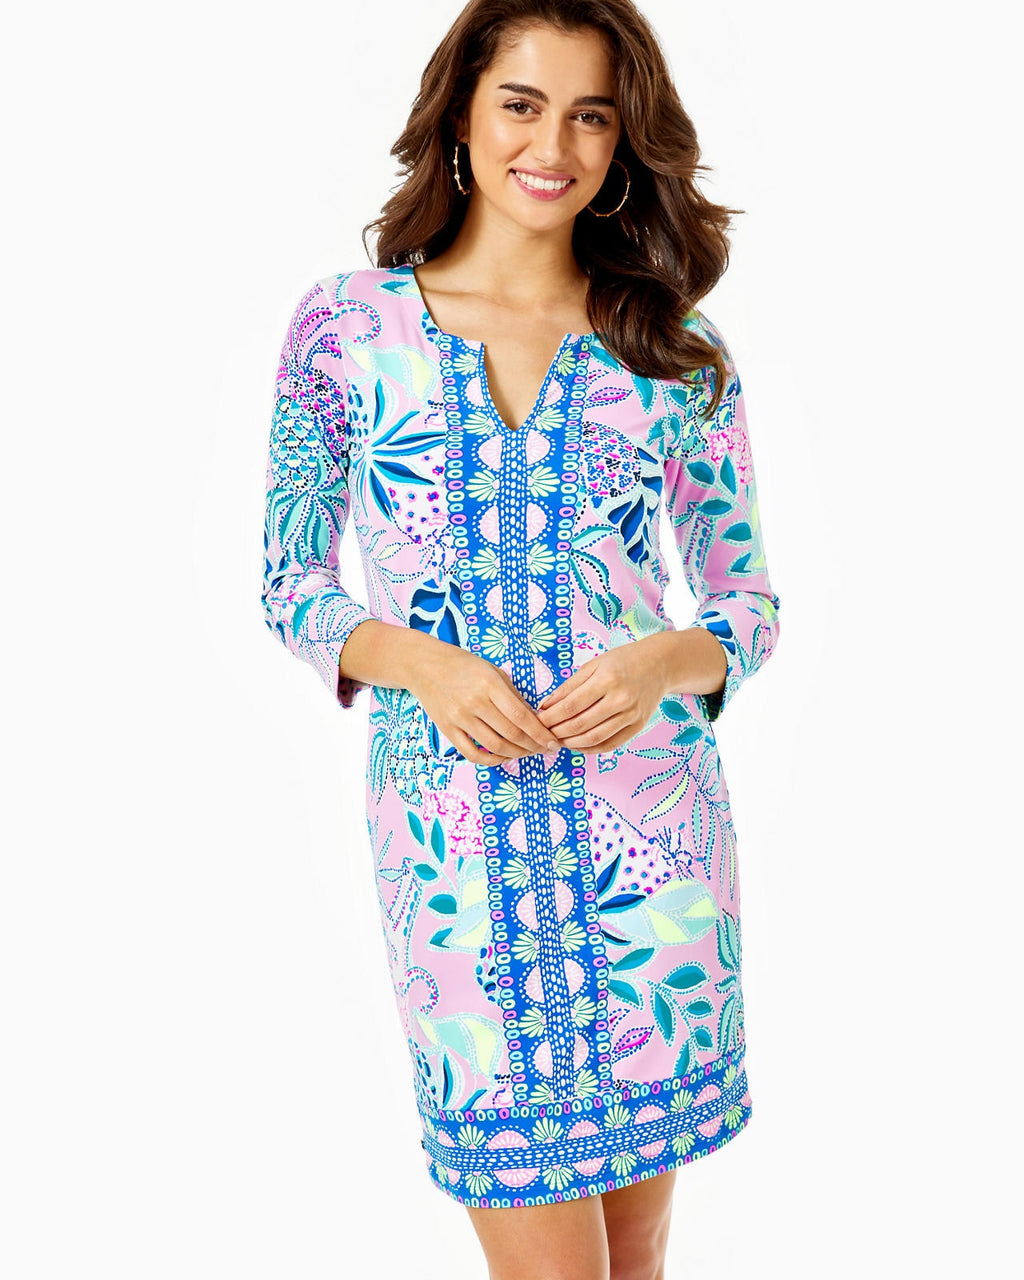 UPF 50+ ChillyLilly Nadine Dress